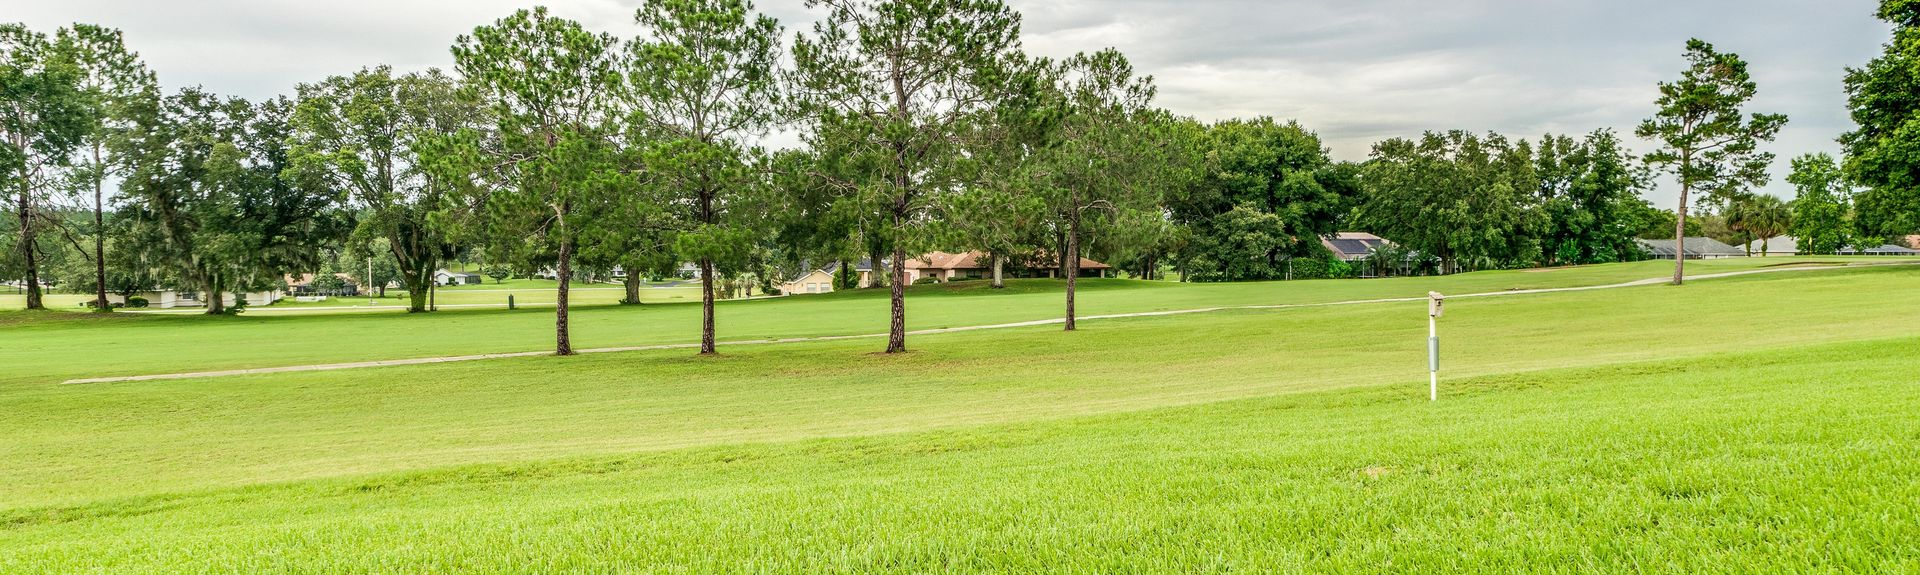 Stone Creek Golf Club, Ocala, Florida, United States